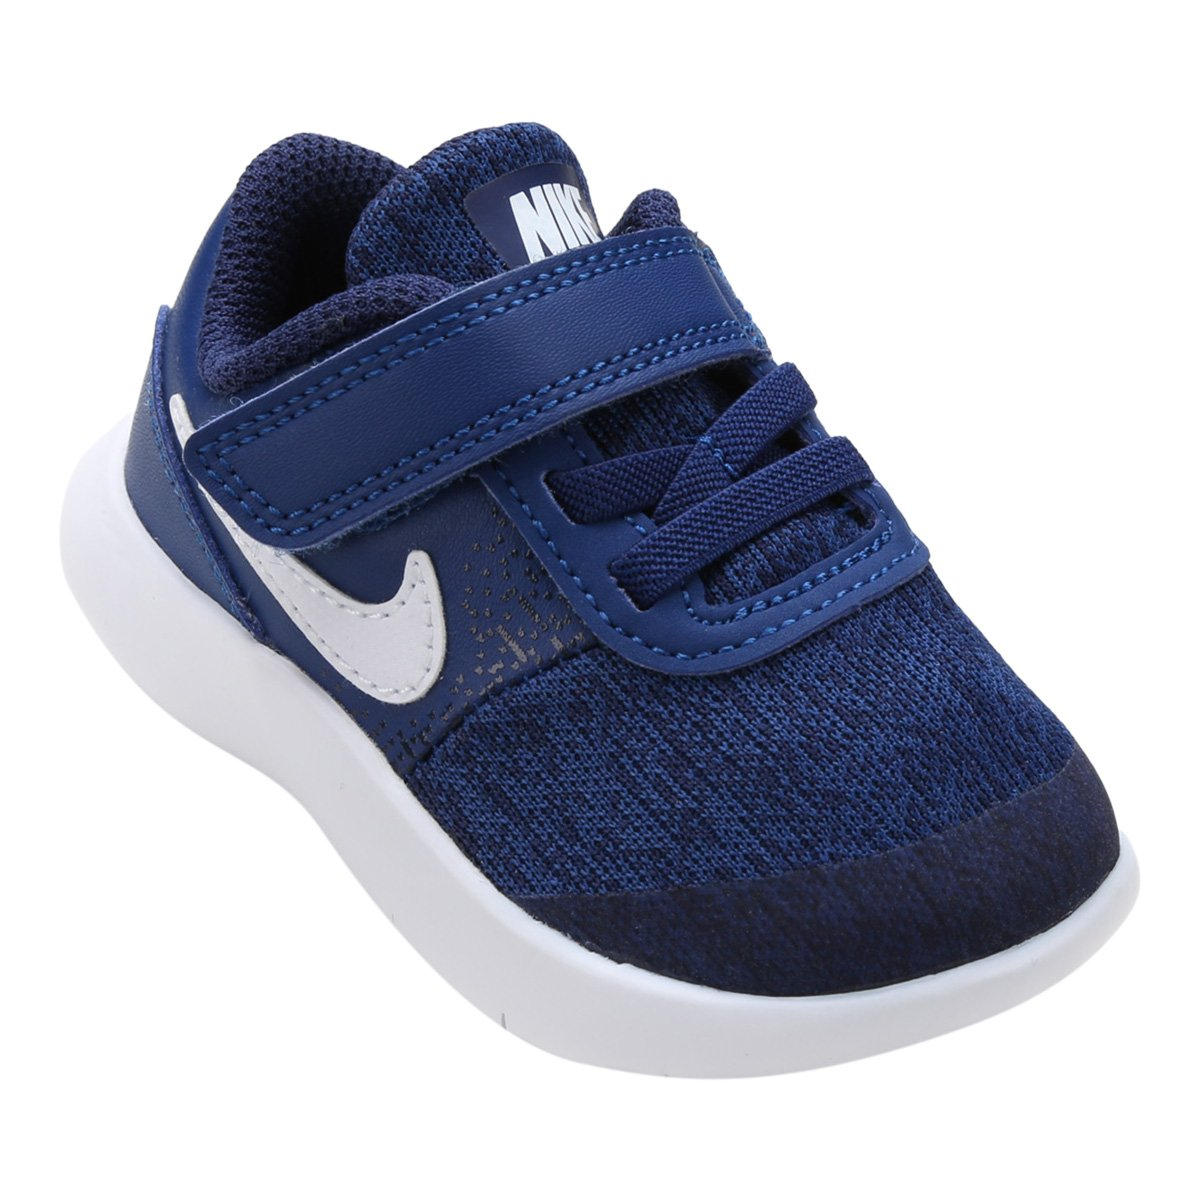 Infant Nike Shoes